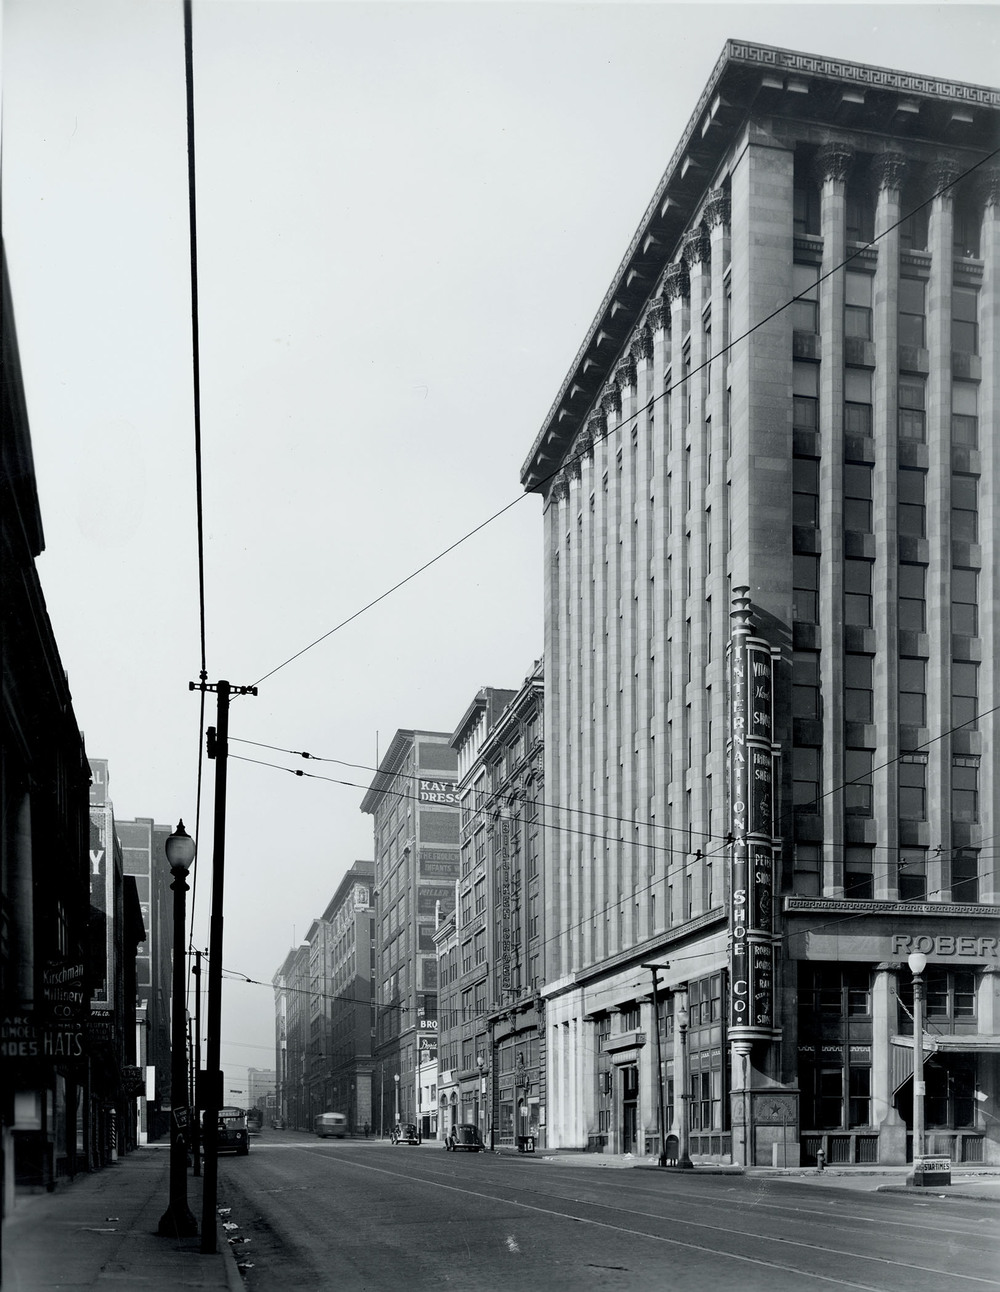 Much of Washington Avenue began to be abandoned after World War II, as industries declined and residents began to move from cities like St. Louis to the suburbs.  Source:  www.ArtLoftStLouis.com